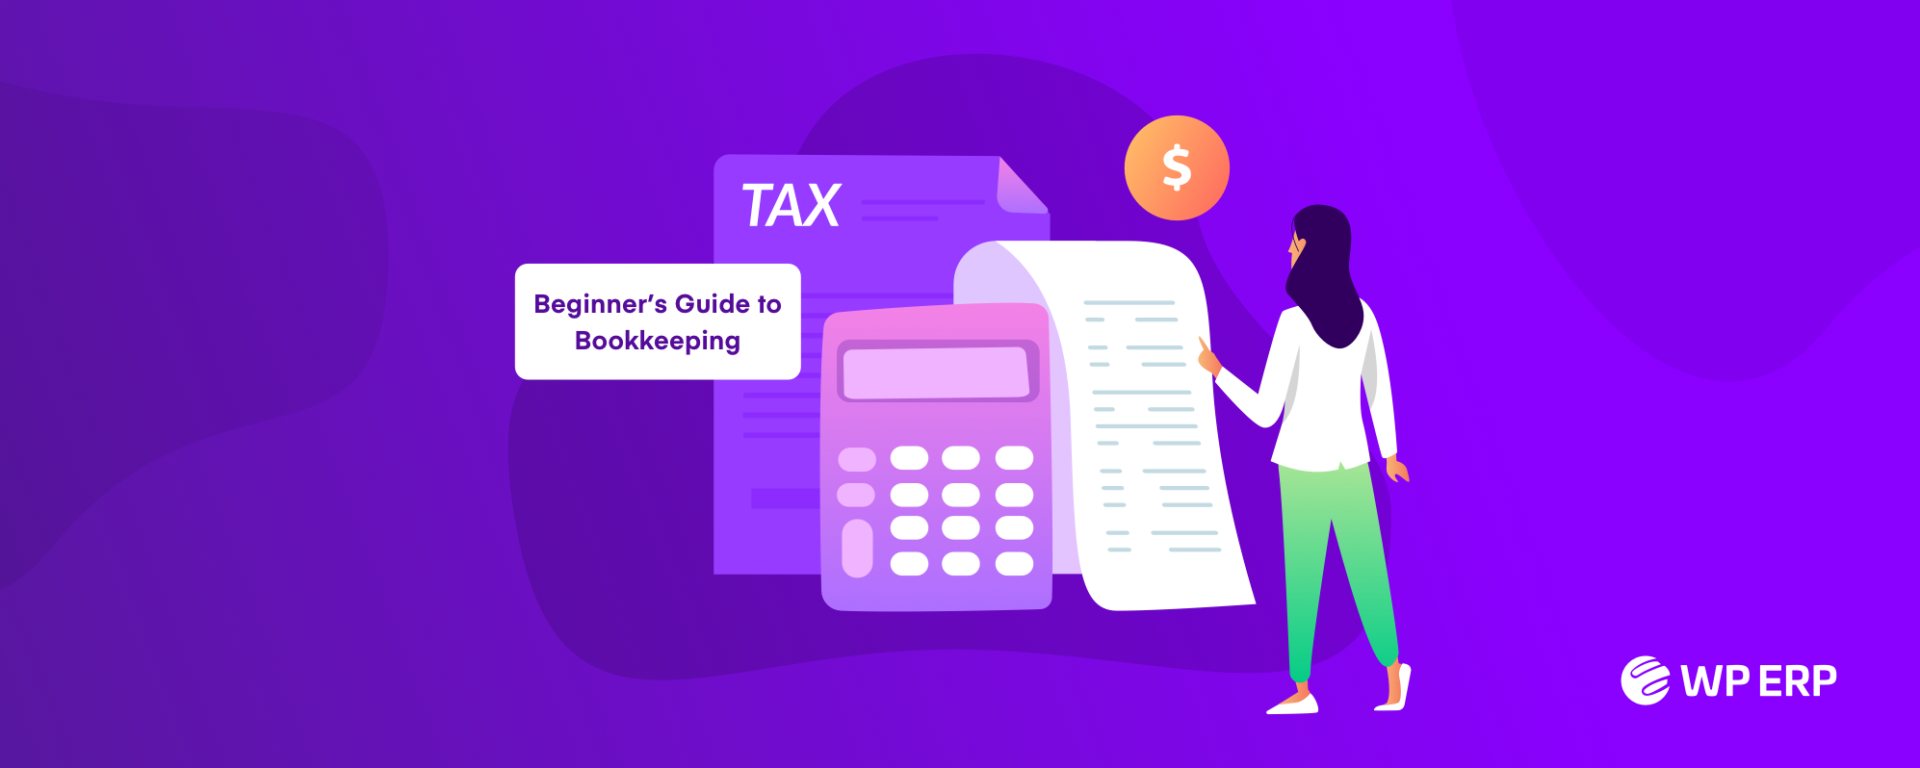 Beginner's Guide to Bookkeeping